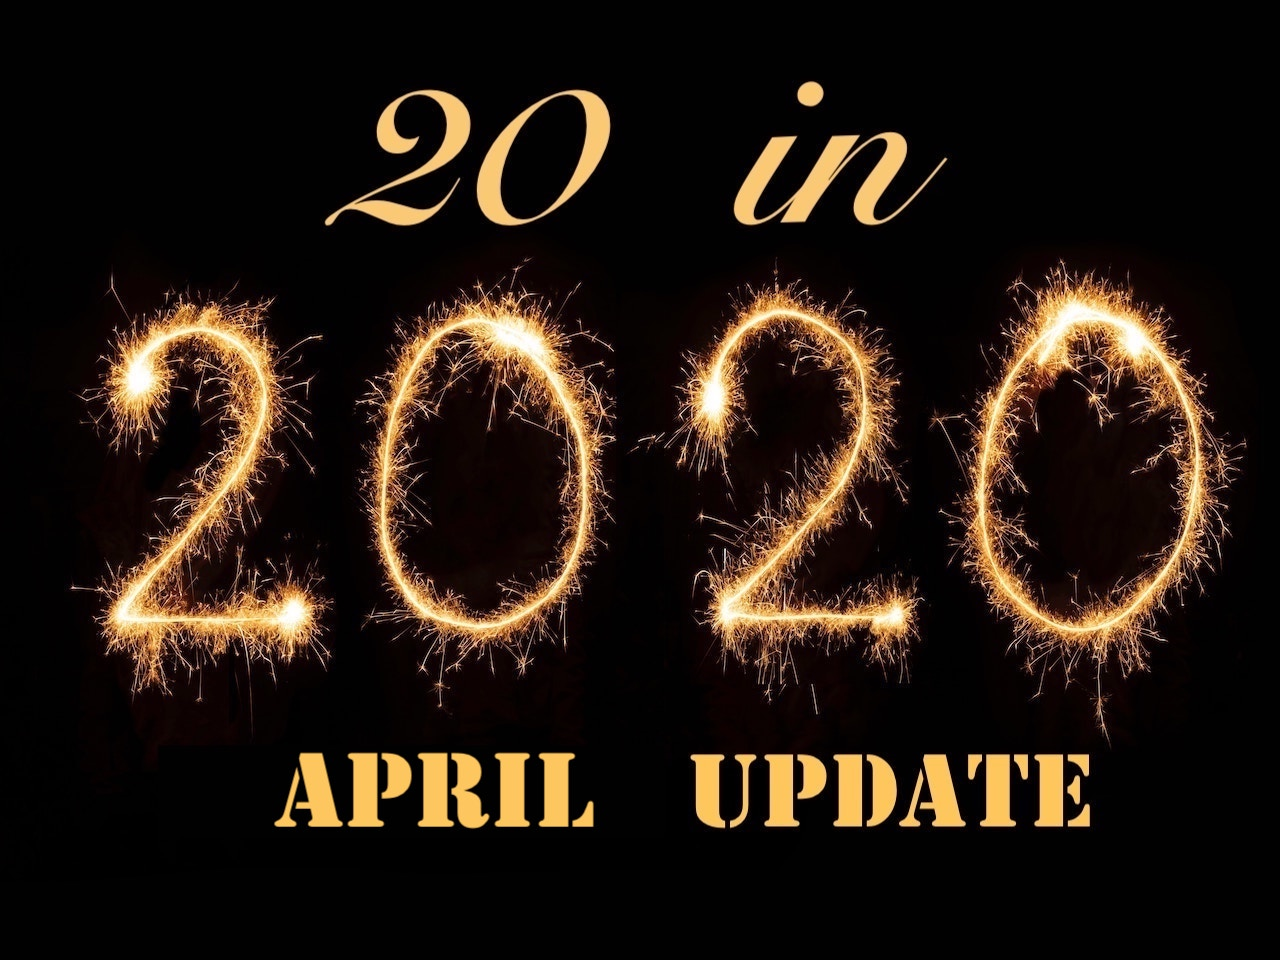 April Update on 20 in 2020